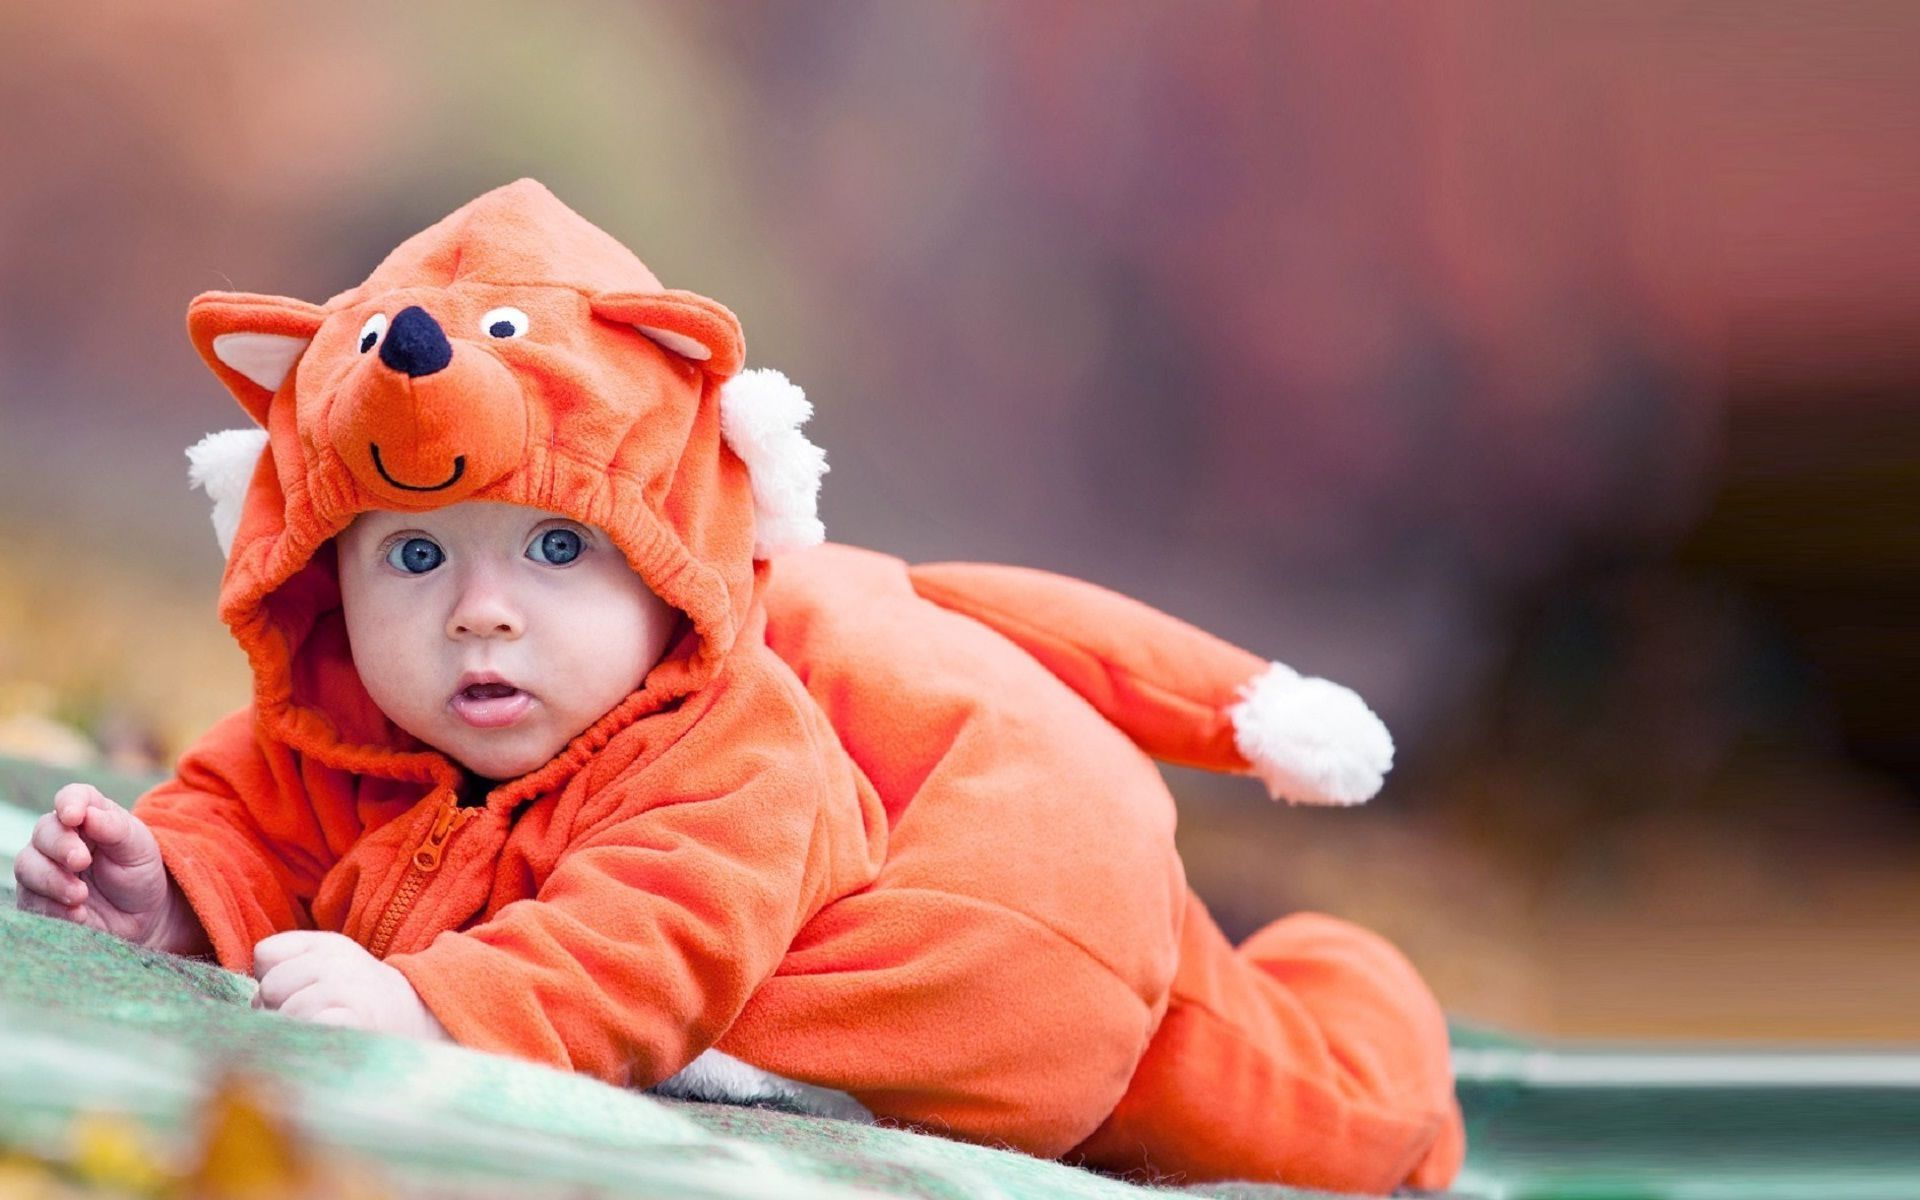 We Have A Large Number Unique And Popular Muslim Boys Names With Meanings And Text In Arabic Urdu Baby Cute Images Baby Images Hd Cute Baby Wallpaper